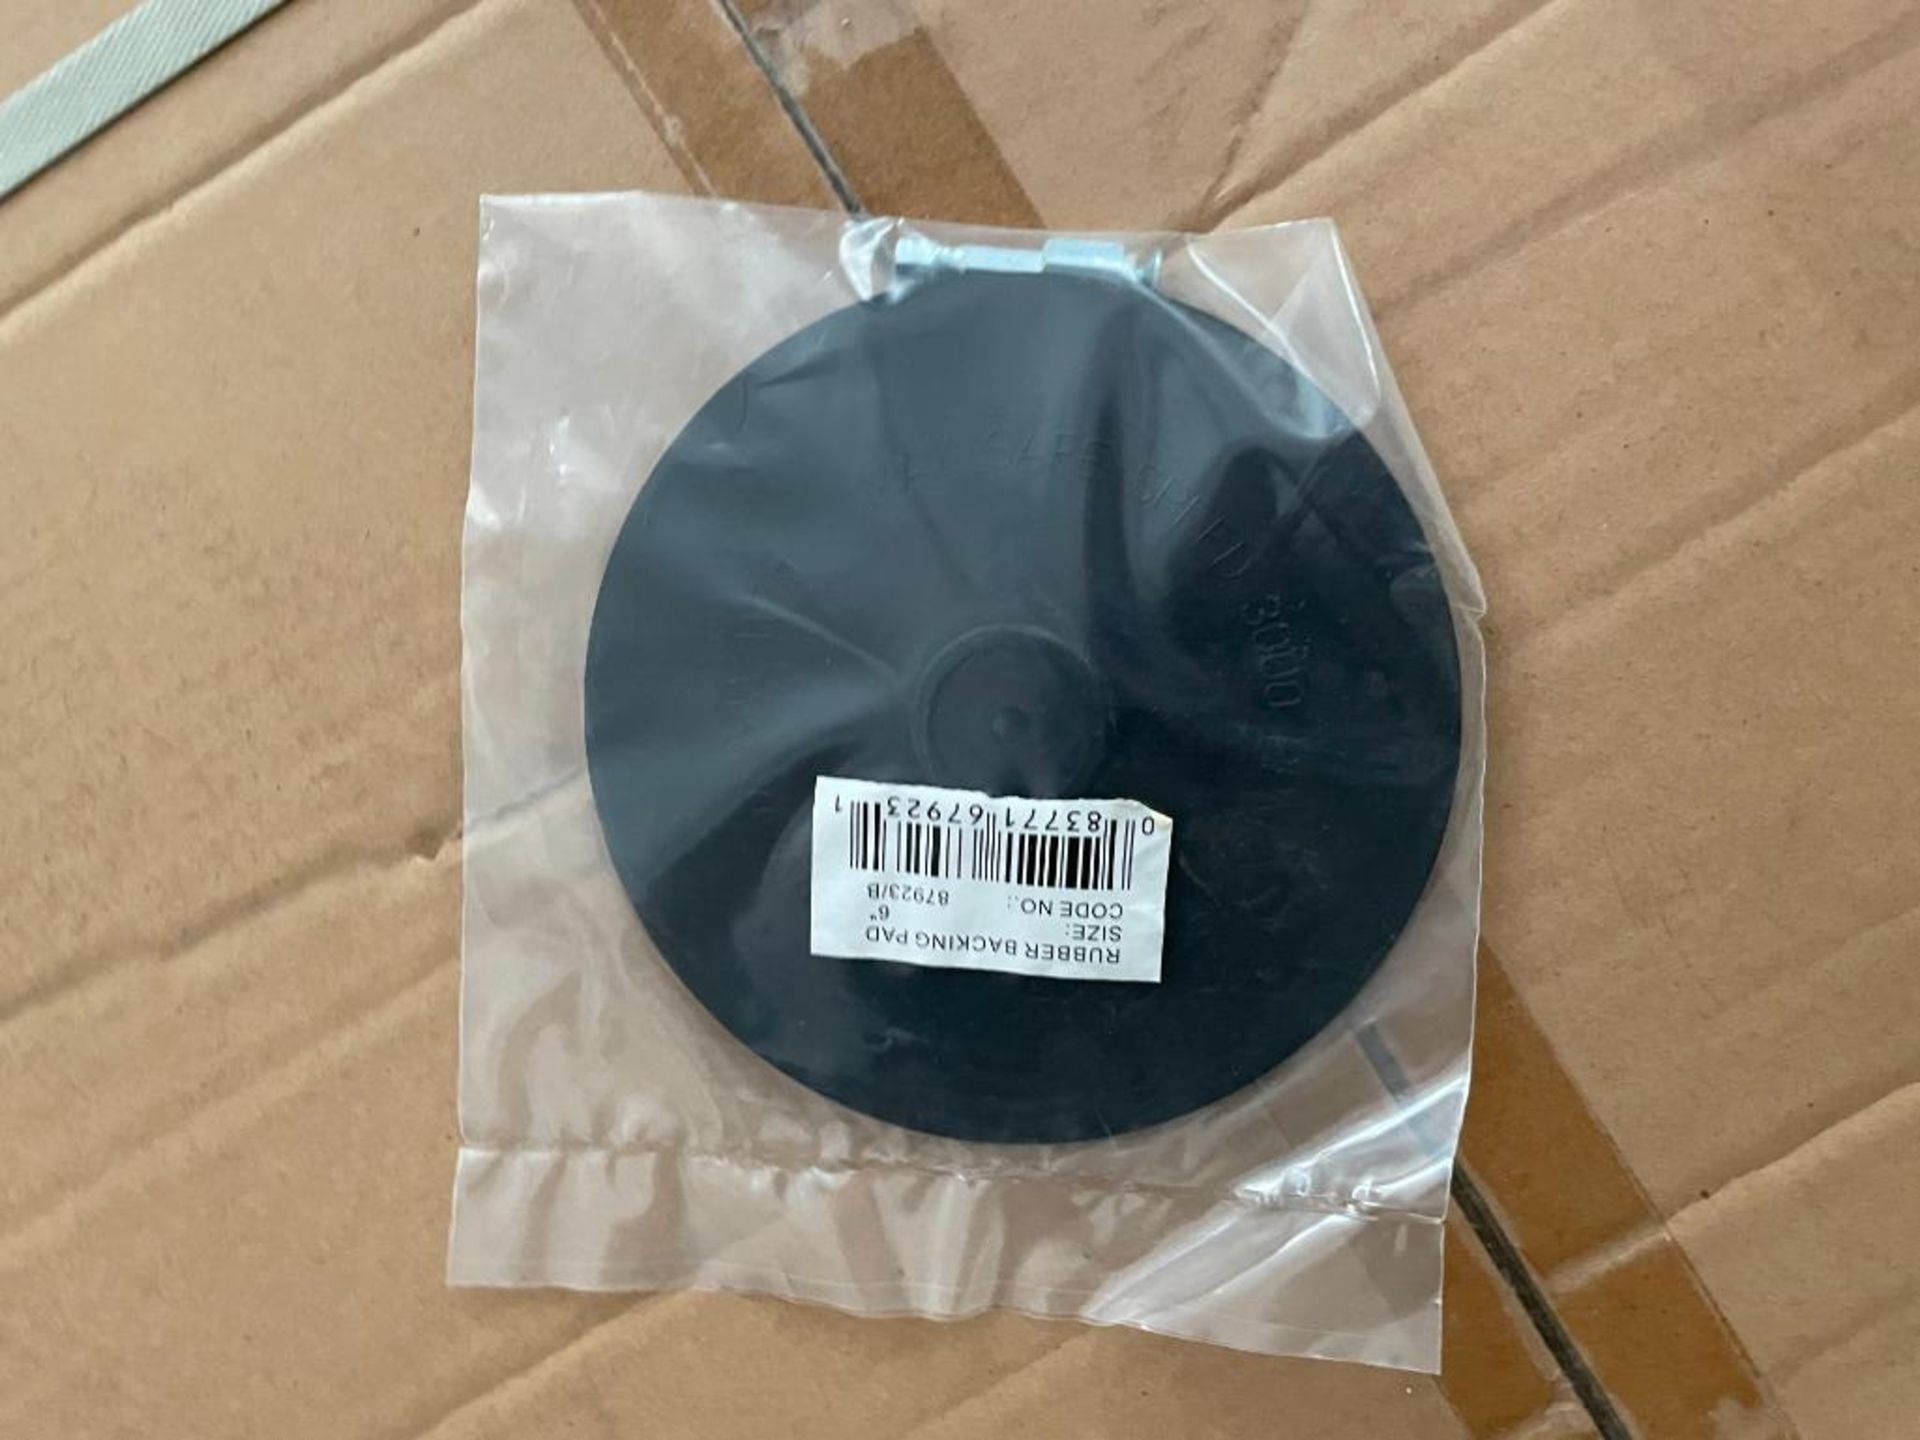 """250CT 6"""" BLACK RUBBER BACK UP BAD FOR DRILLS WITH 1/4"""" SHANK BRAND/MODEL EAZYPOWER 87923 ADDITIONAL - Image 2 of 4"""